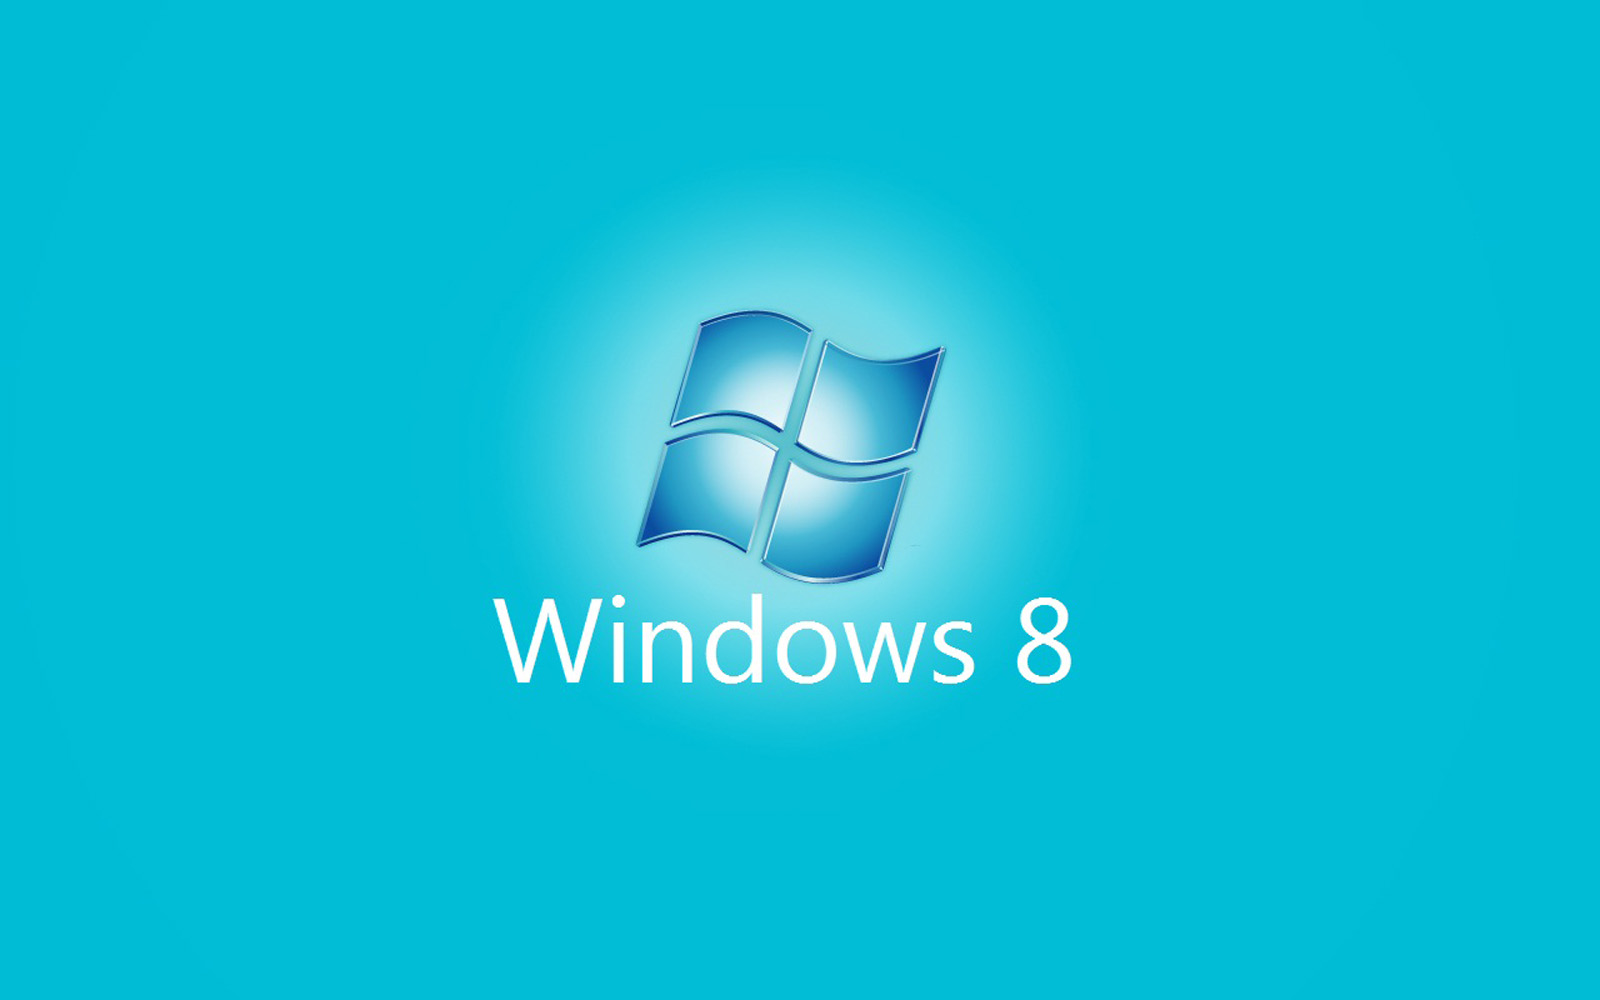 windows 8 background themes hd wallpapers